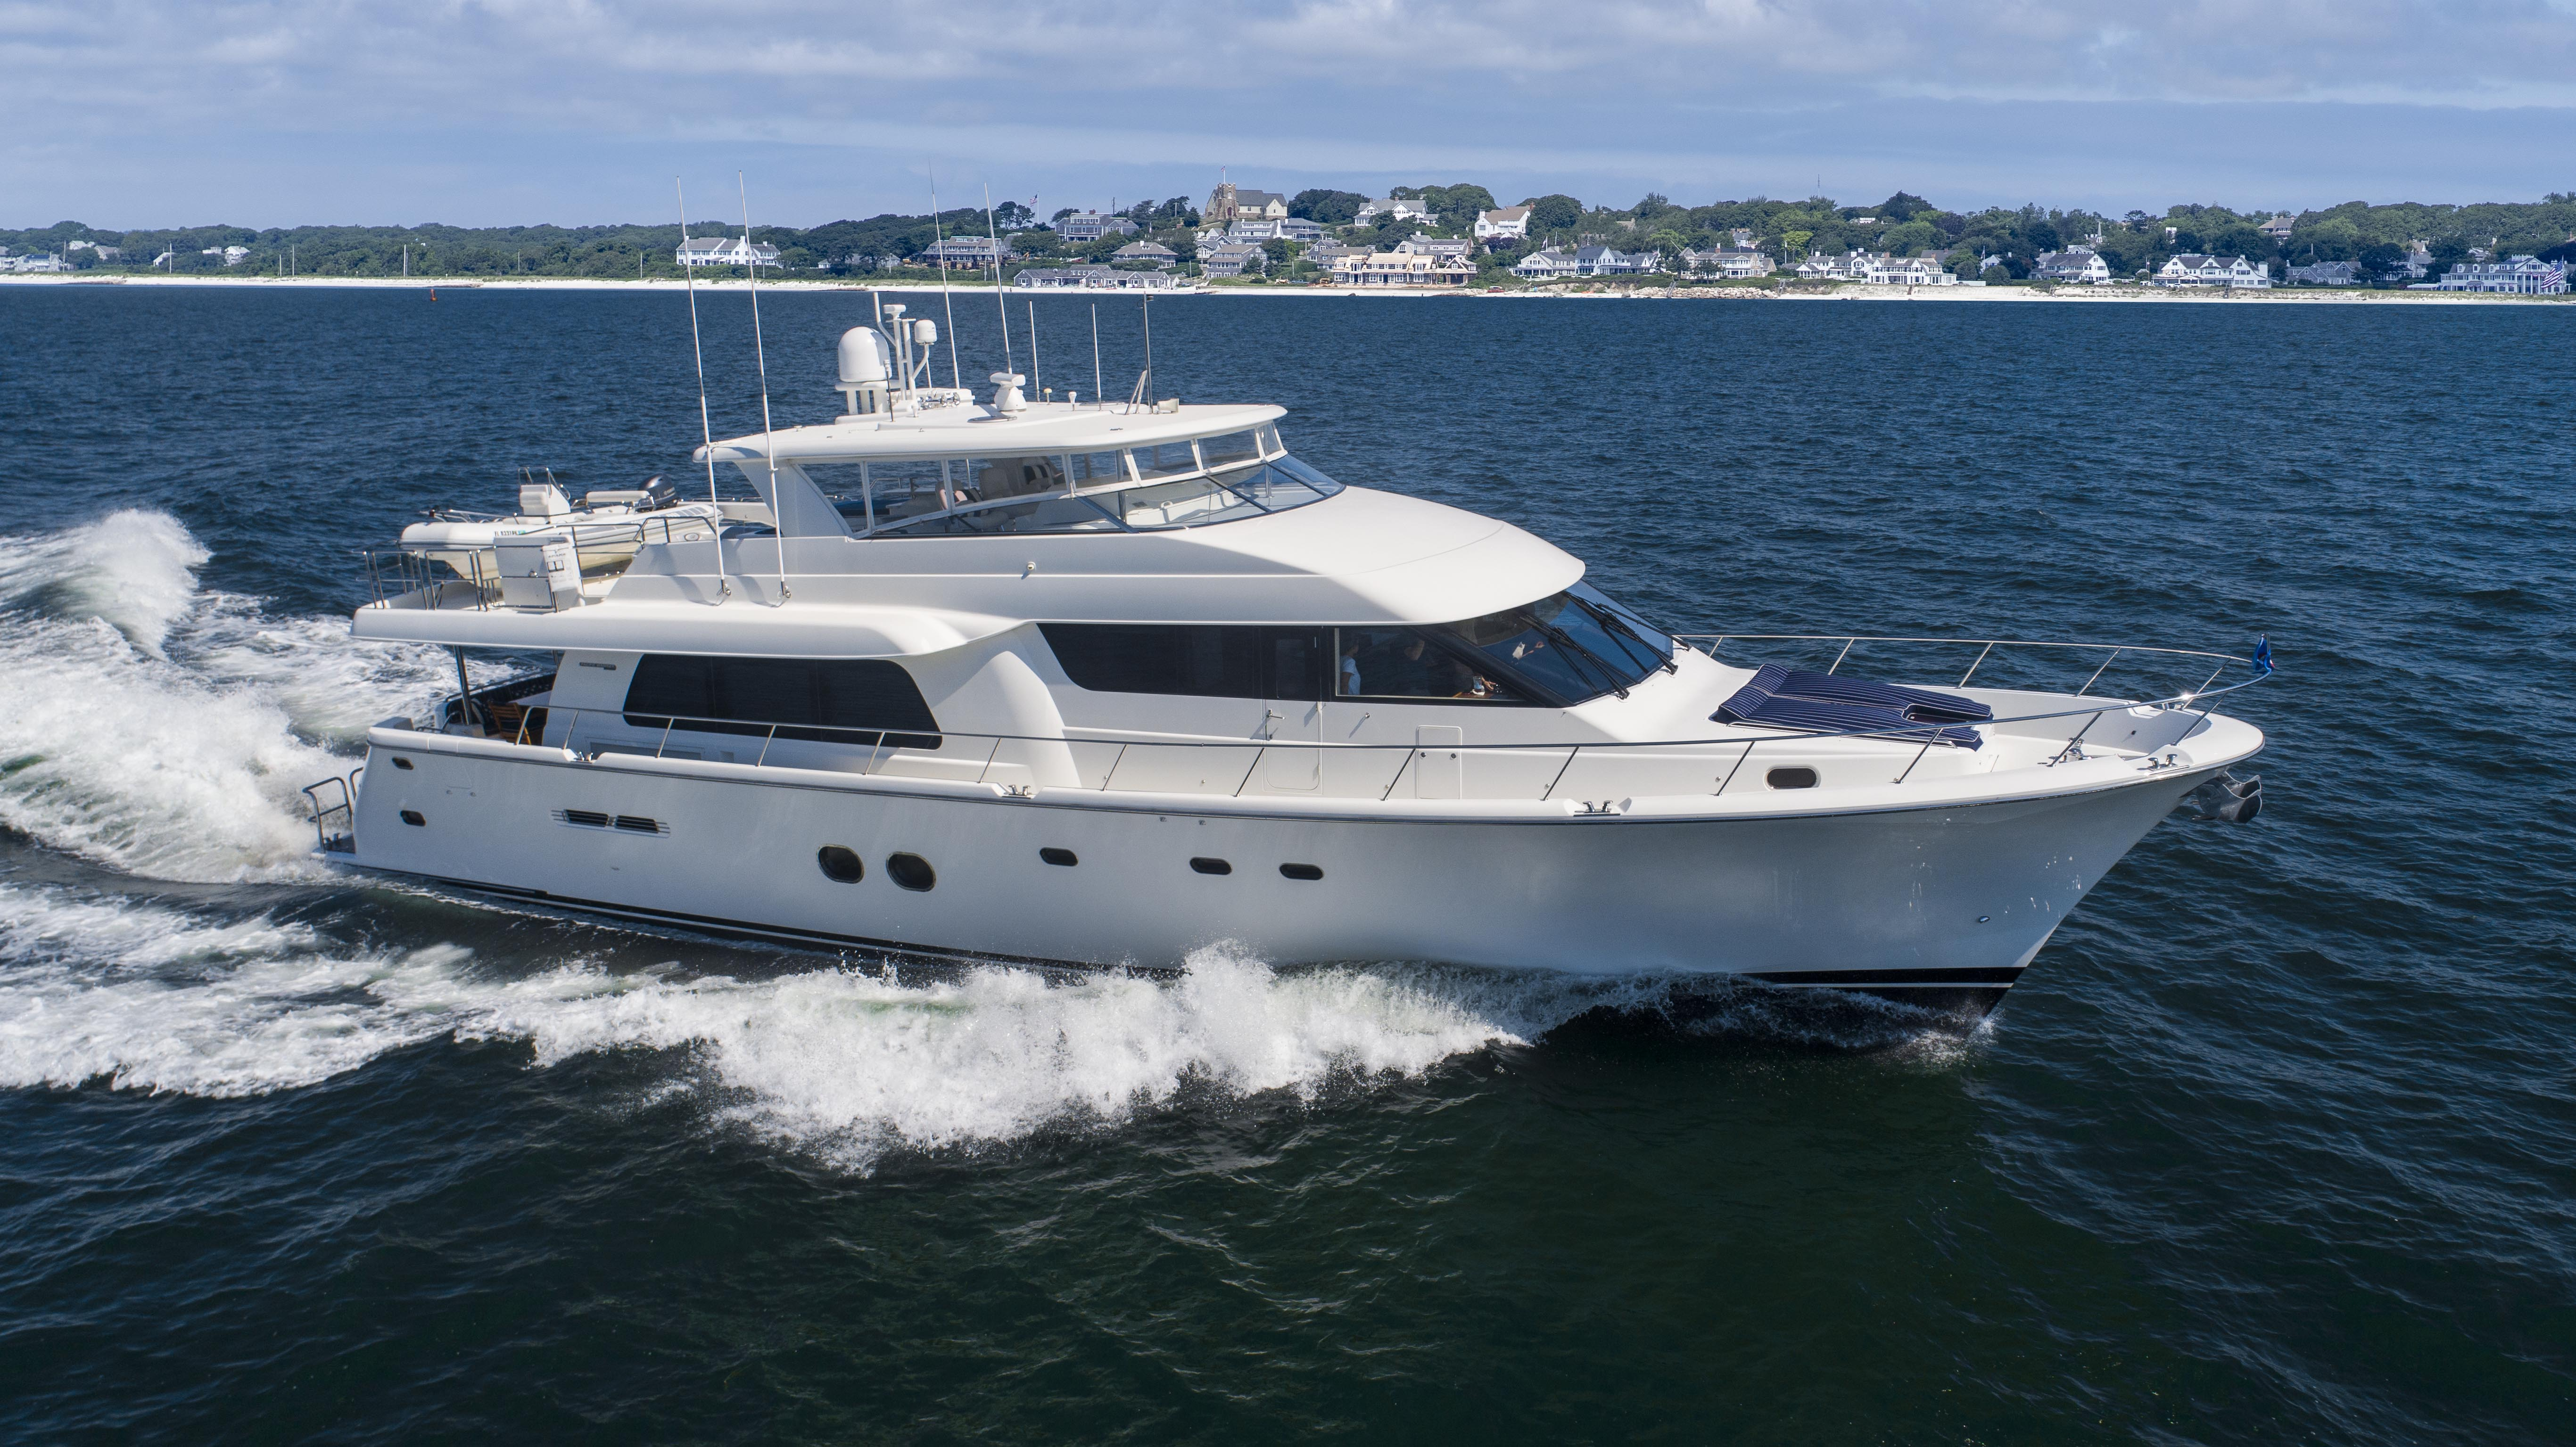 New Listing! The 2012 85' Pacific Mariner MY, BELLA is for